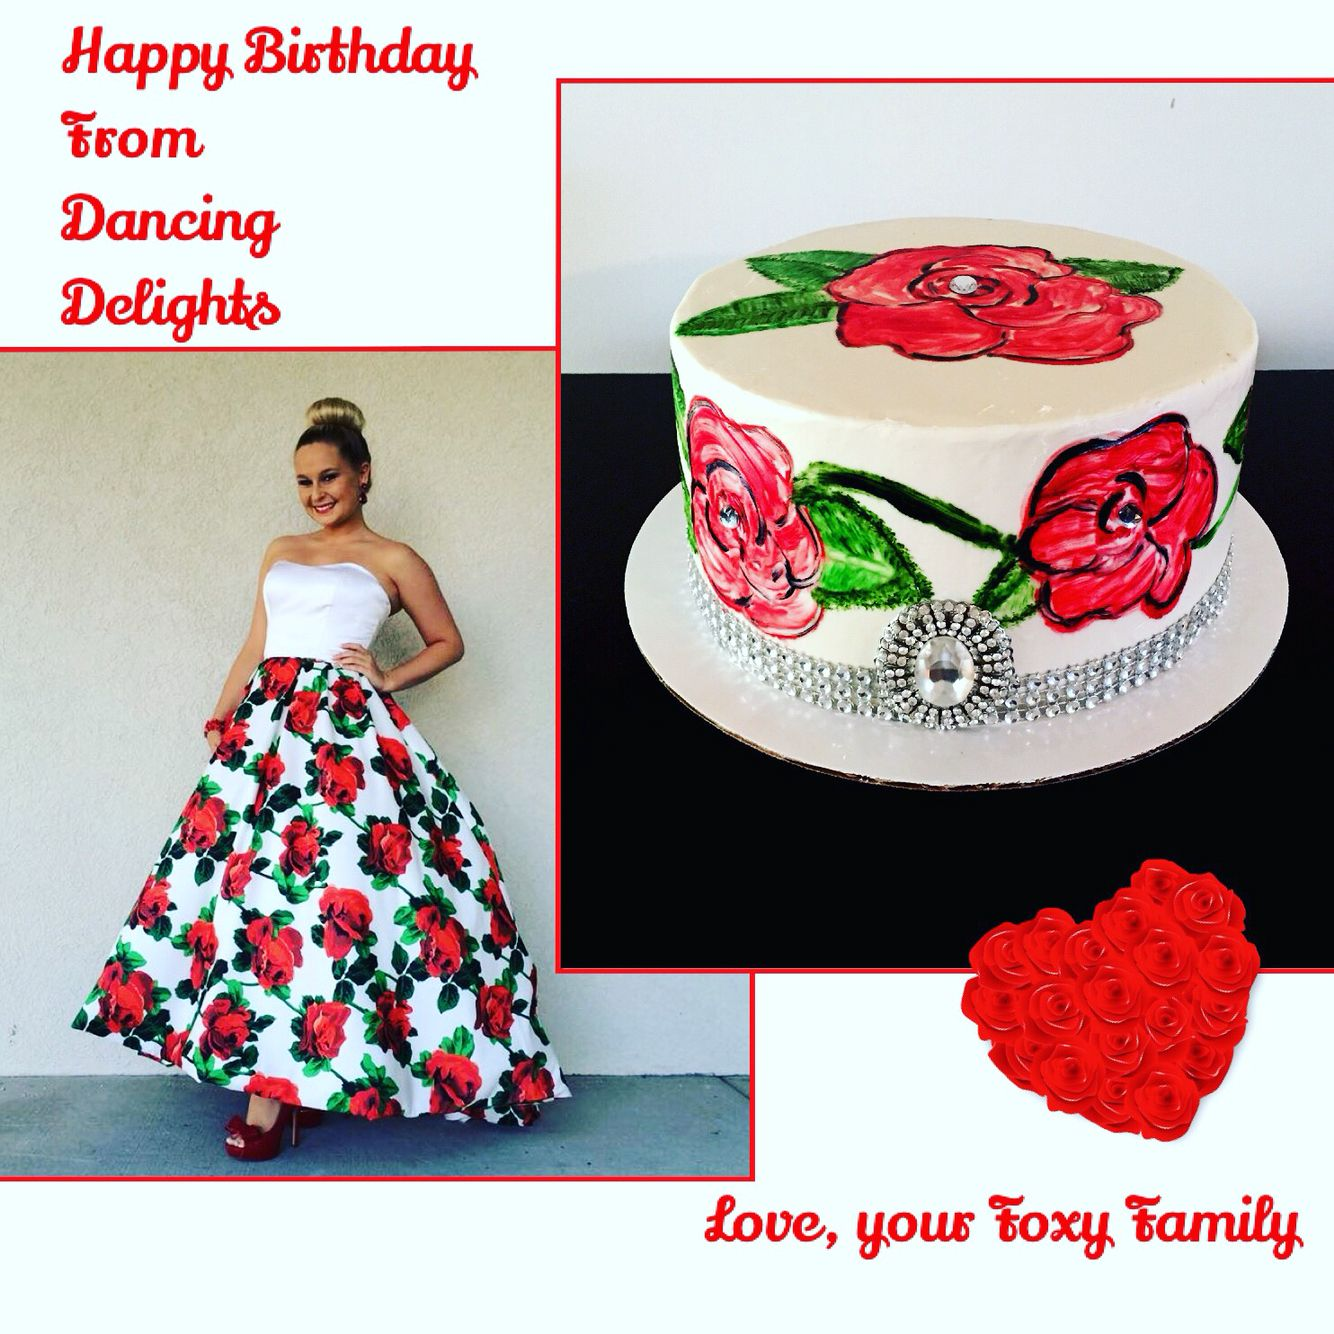 I made this Red Velvet cake for a girl who loved her Red rose floral Sherri Hill dress.